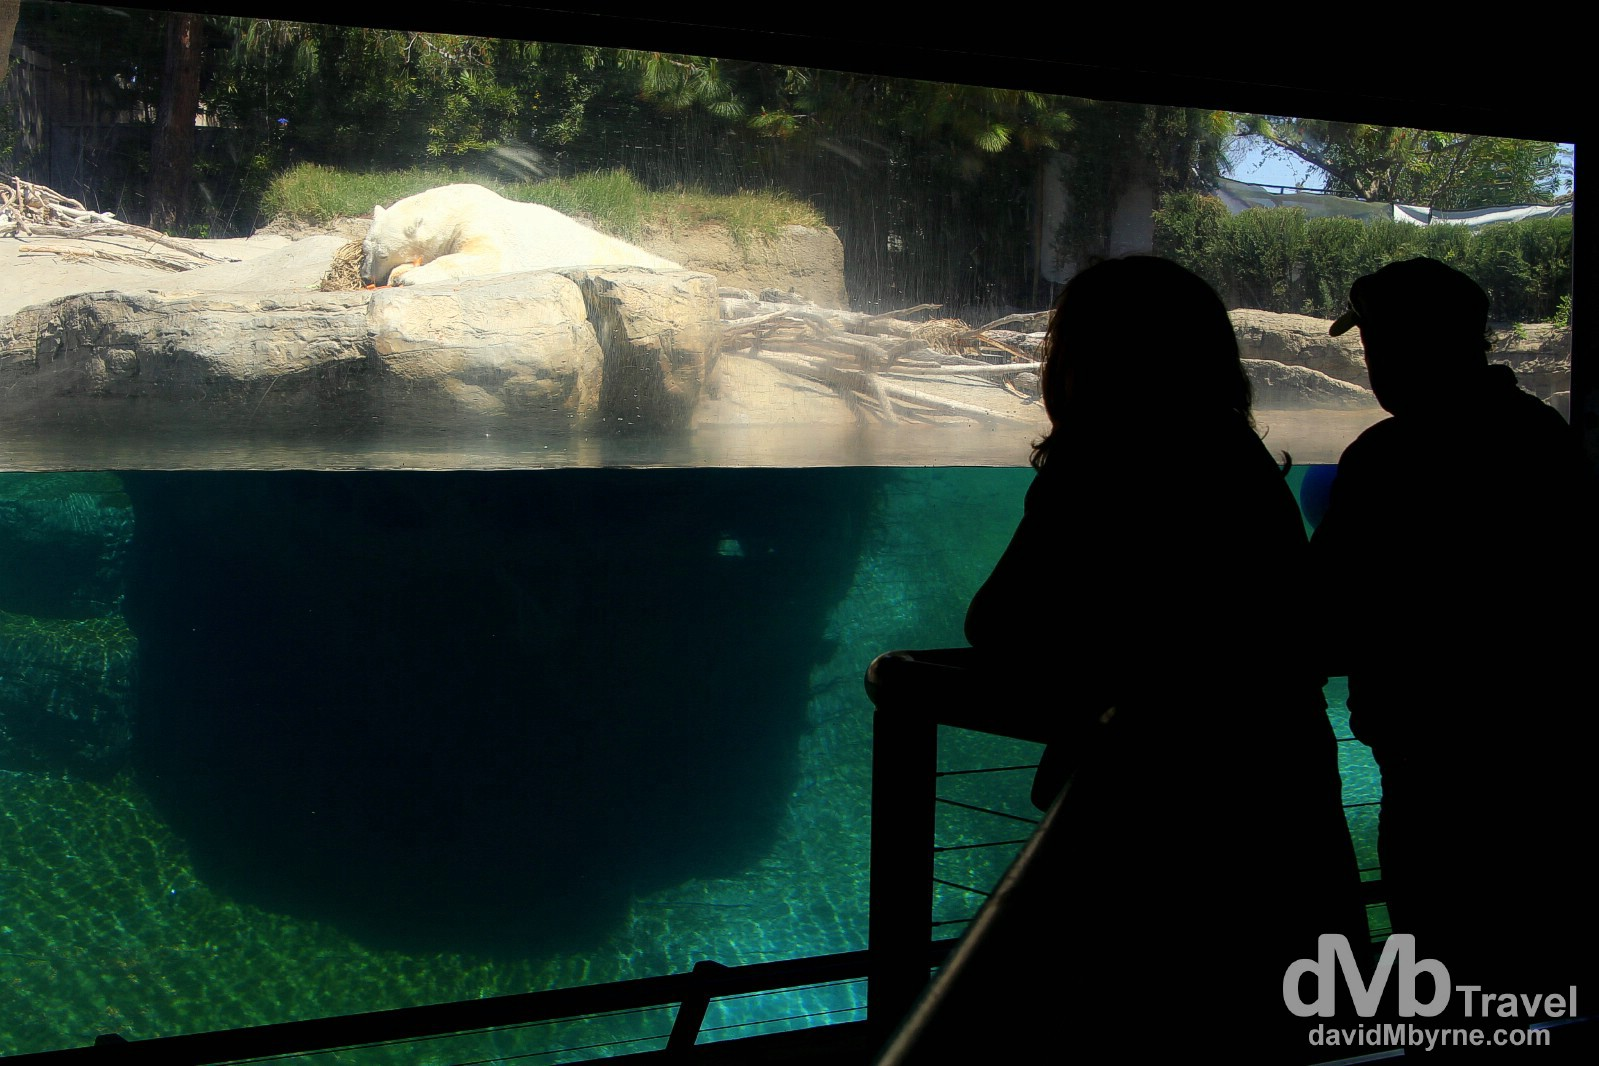 Viewing a polar bear in the Northern Frontier zone of San Diego Zoo. San Diego, California, USA. April 17th 2013.